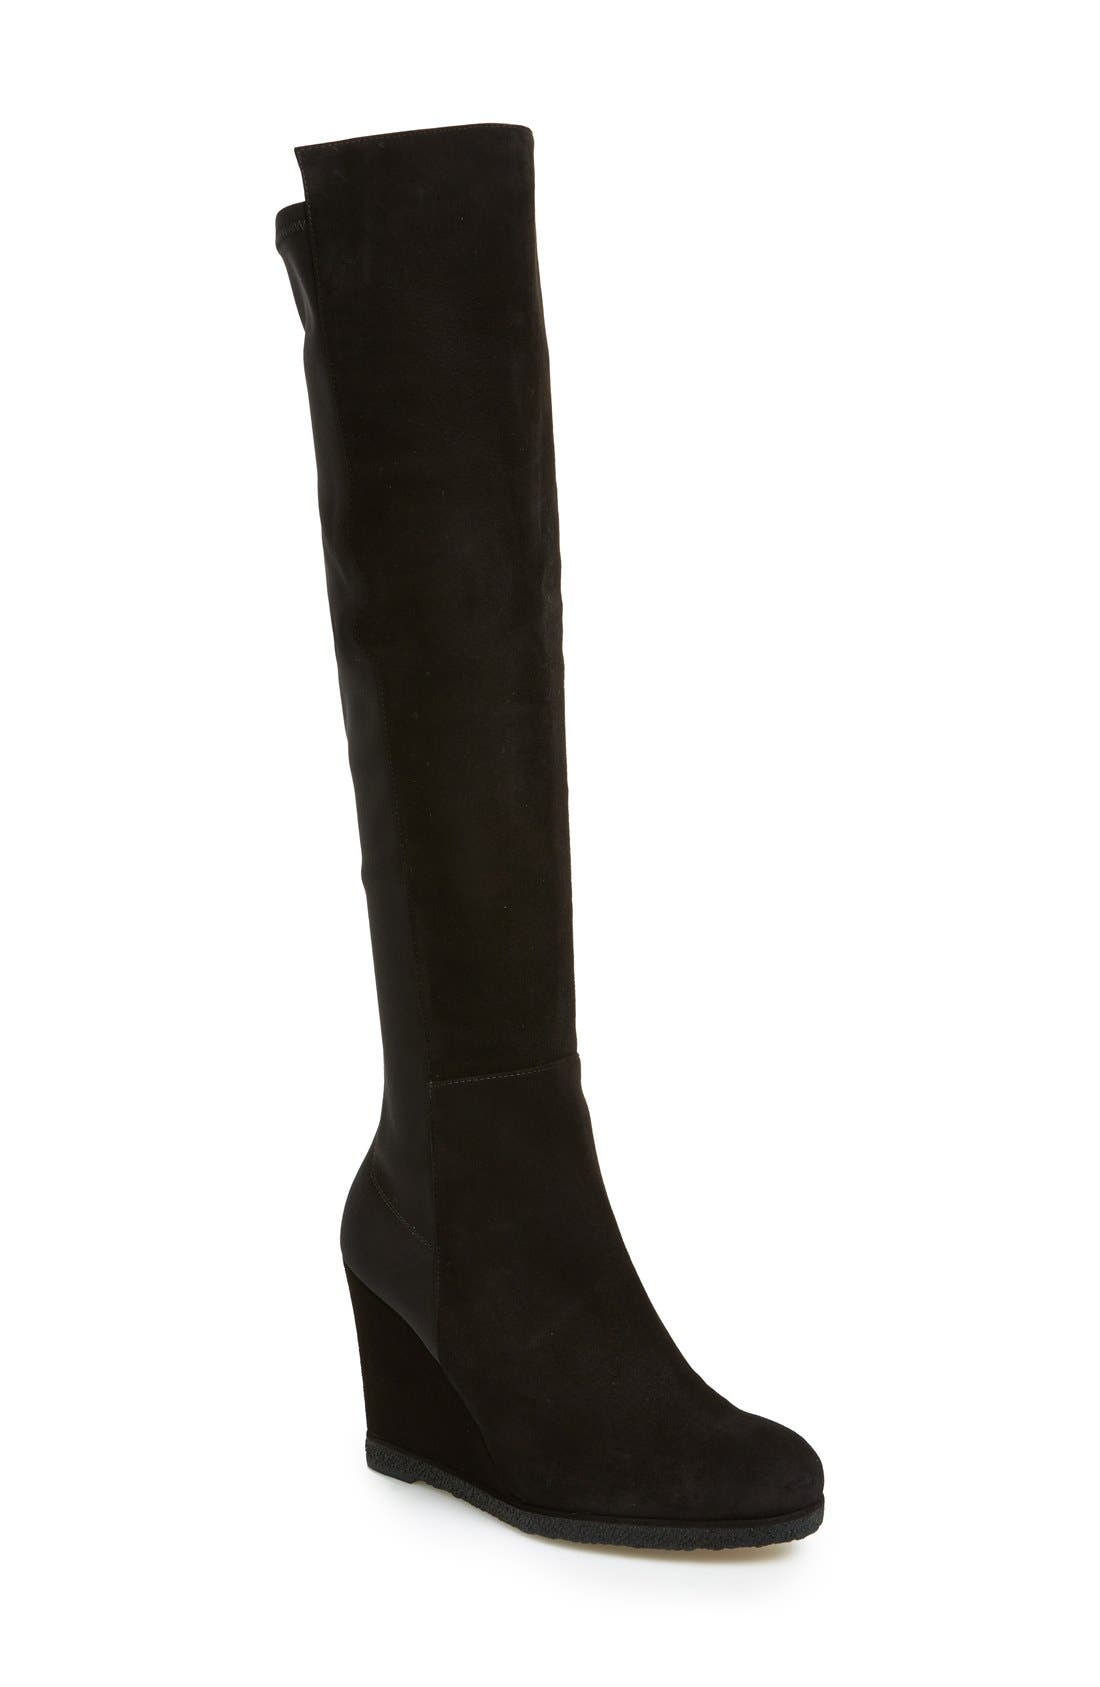 'Demiswoon' Over the Knee Boot,                         Main,                         color, 001